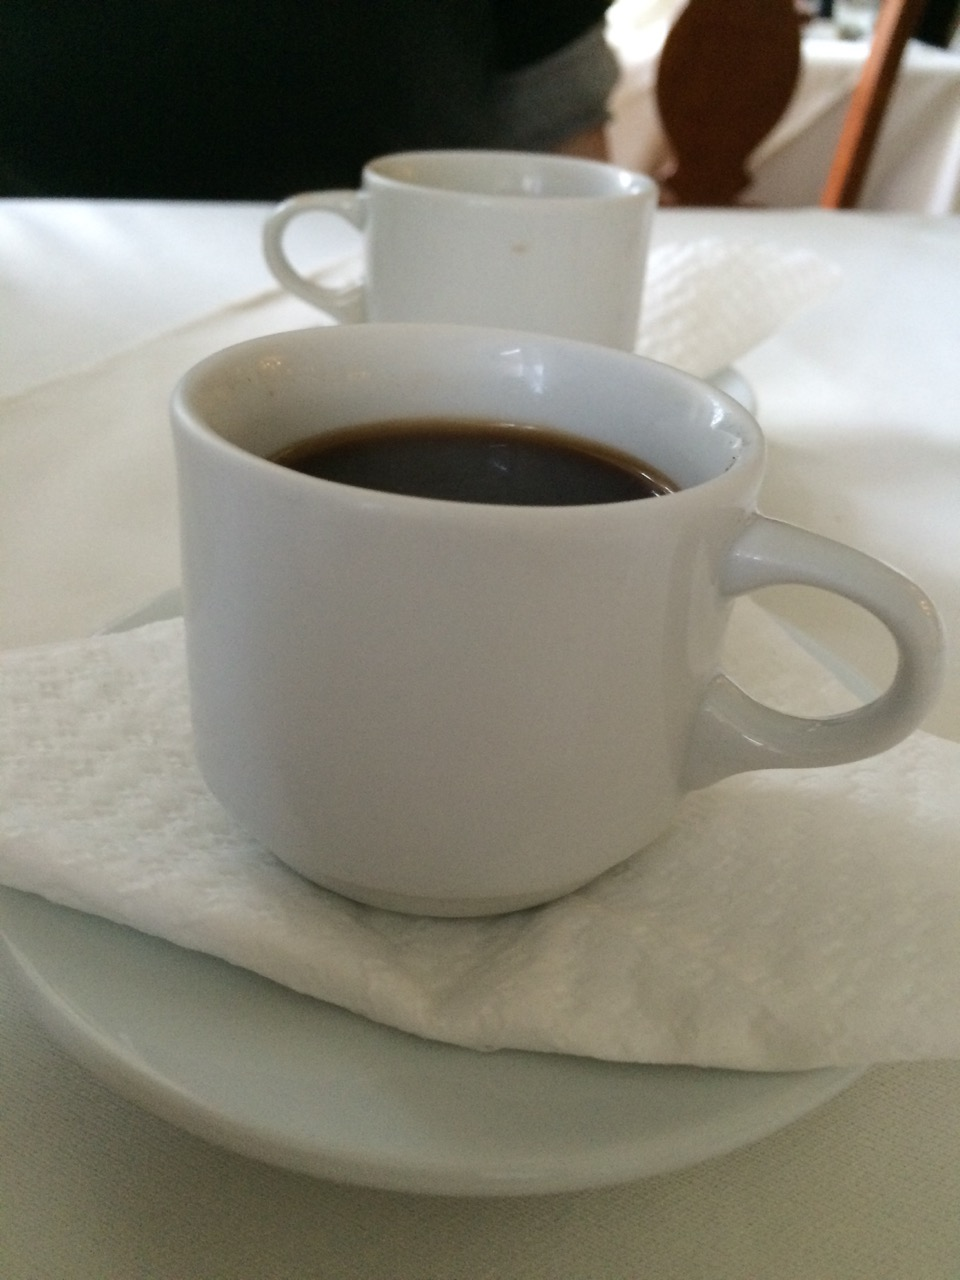 Lebanese coffee to finish the meal